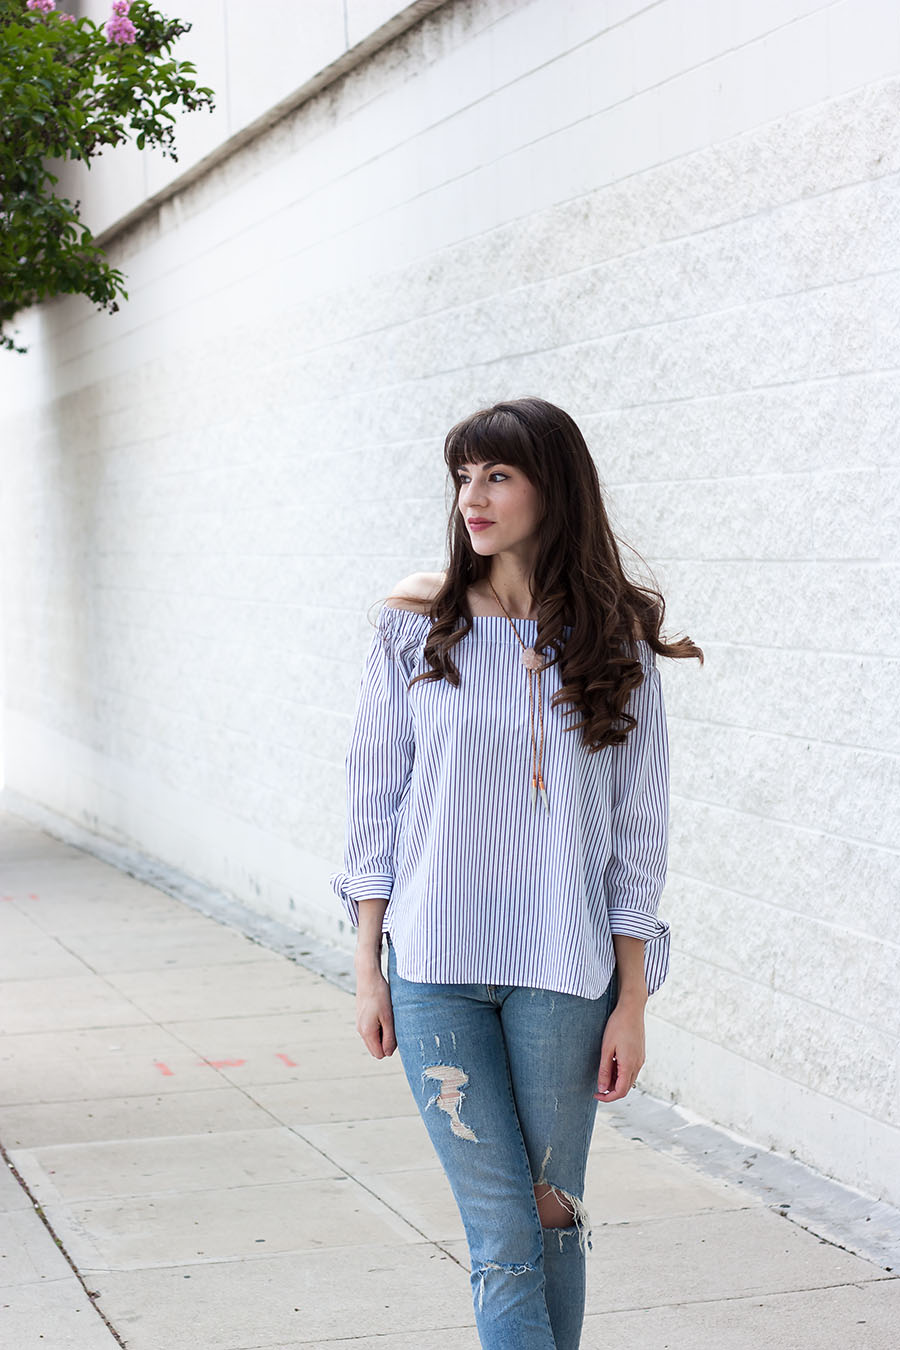 Summer Outfit, Off the Shoulder Top with Ties, Distressed Skinny Jeans, Dear Survivor Jewelry